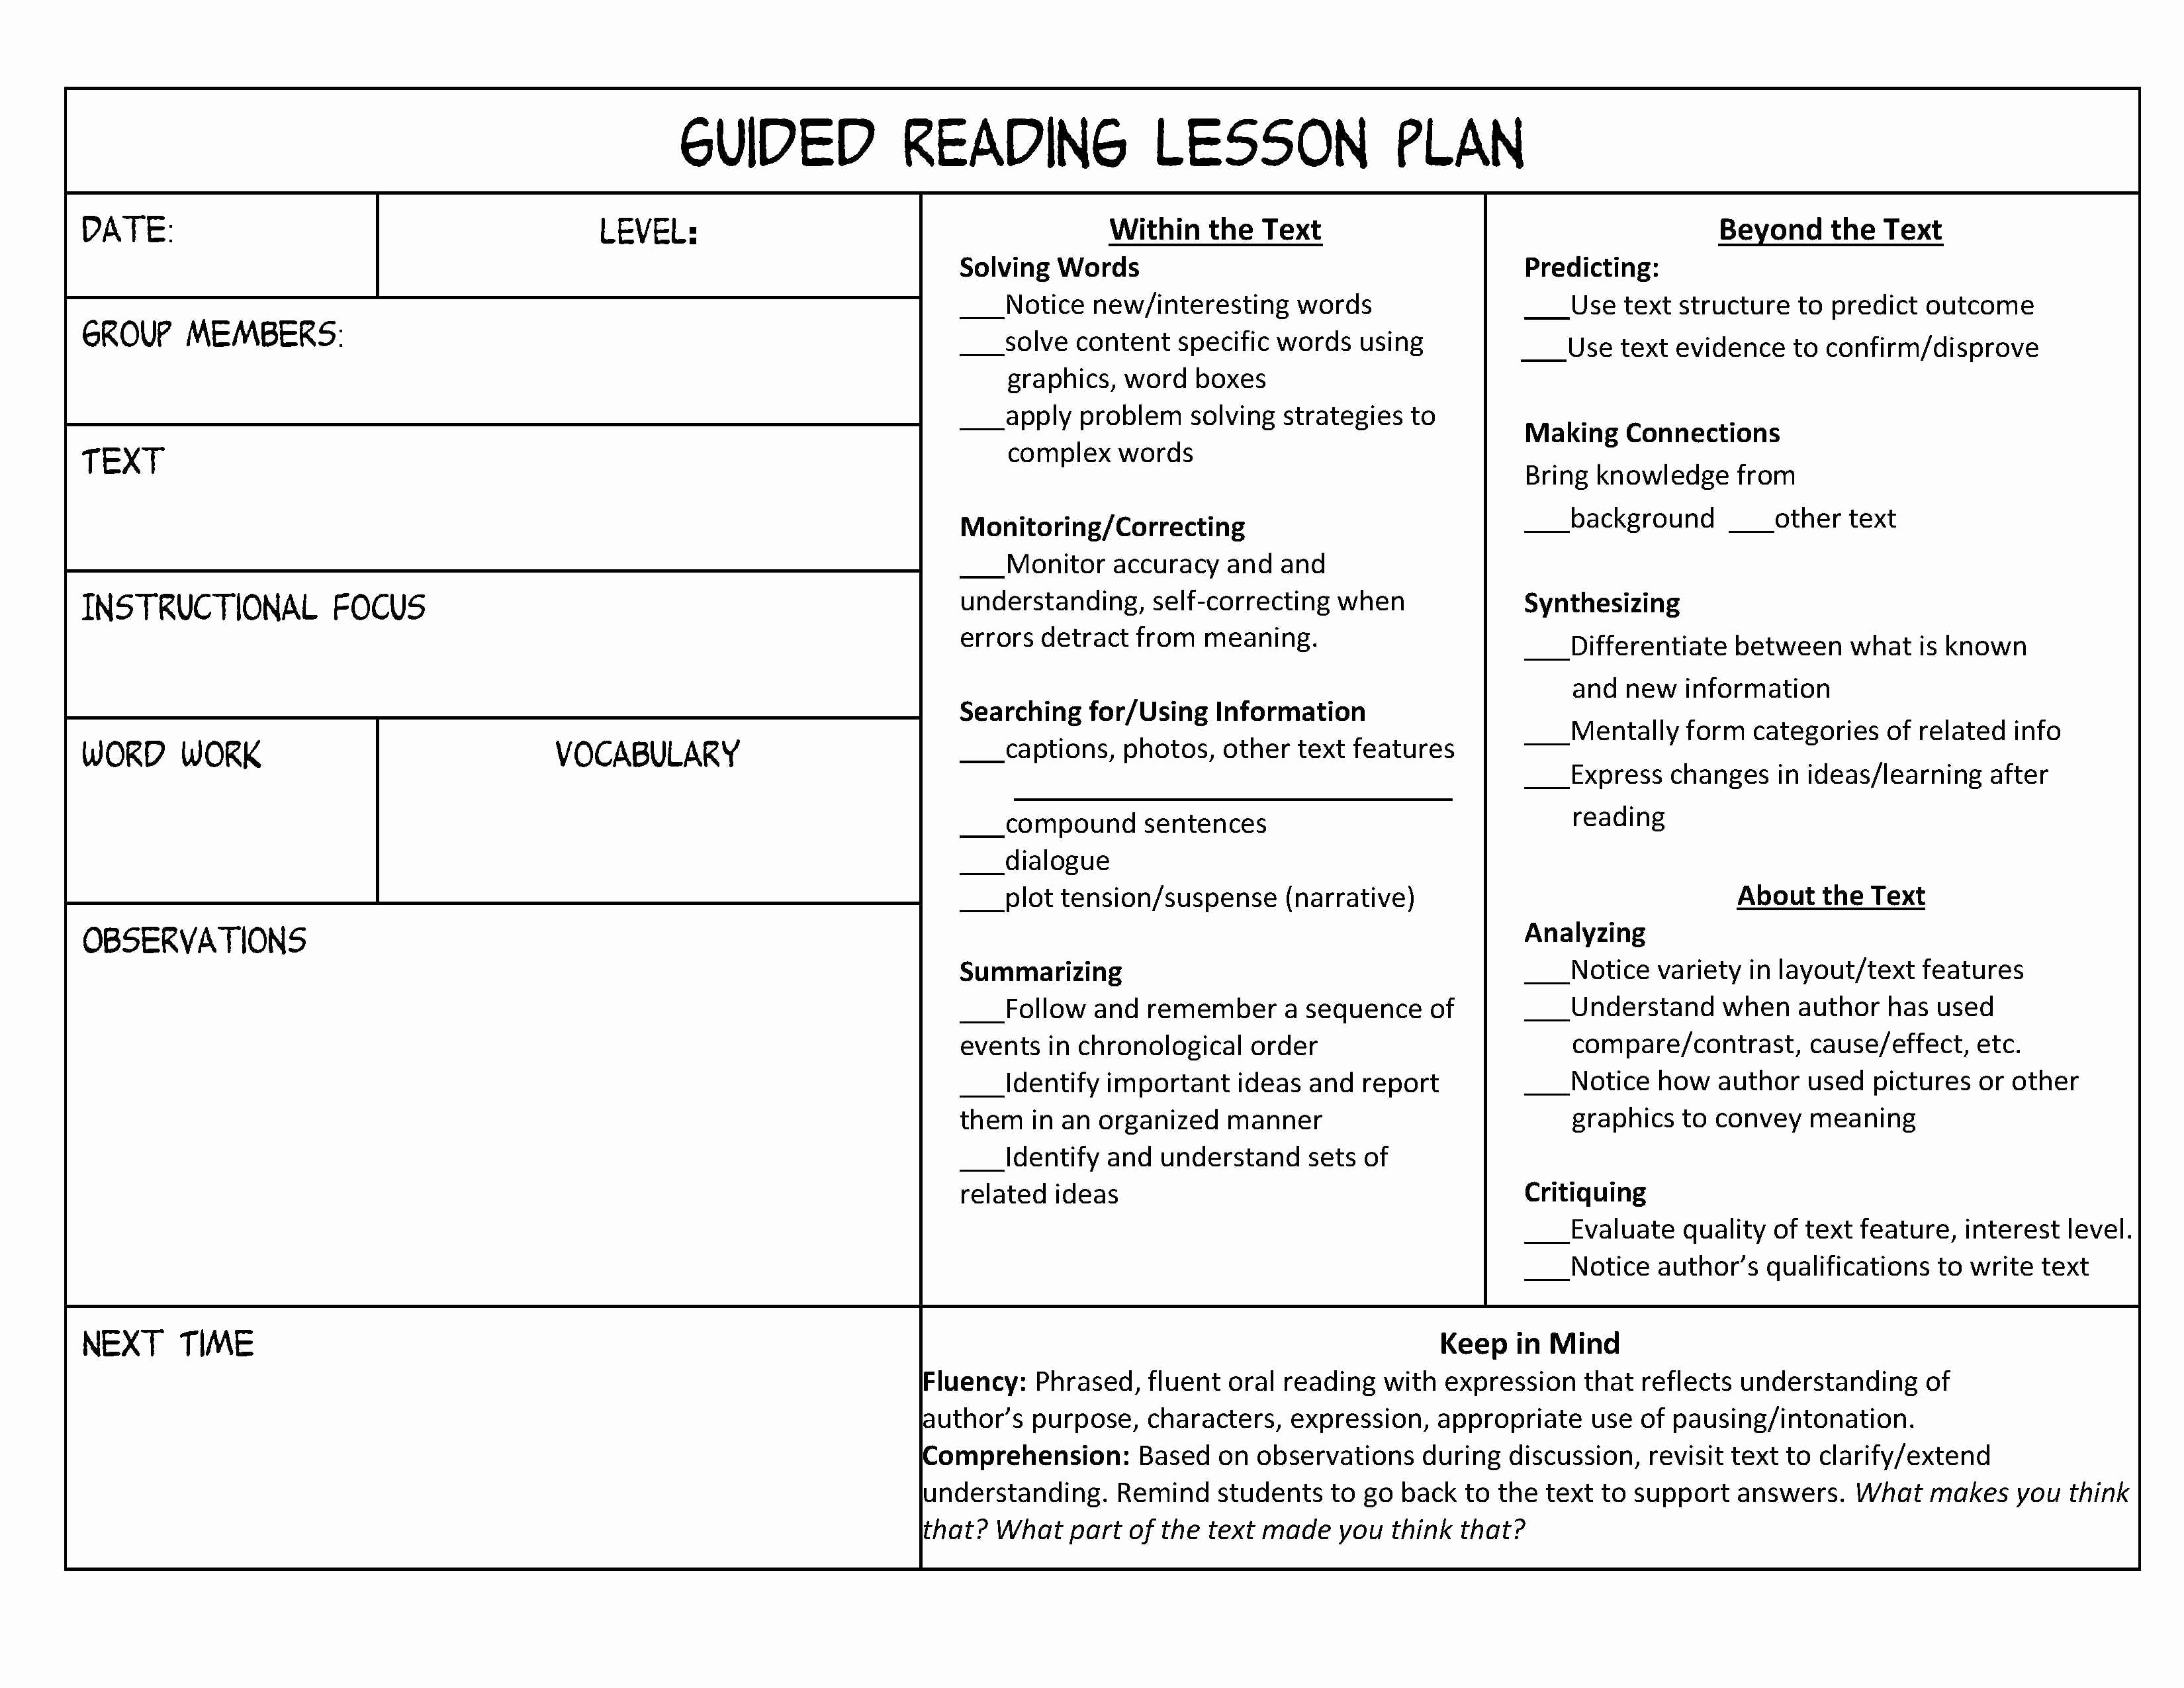 Sample Lesson Plan Template Fresh Guided Reading organization Made Easy